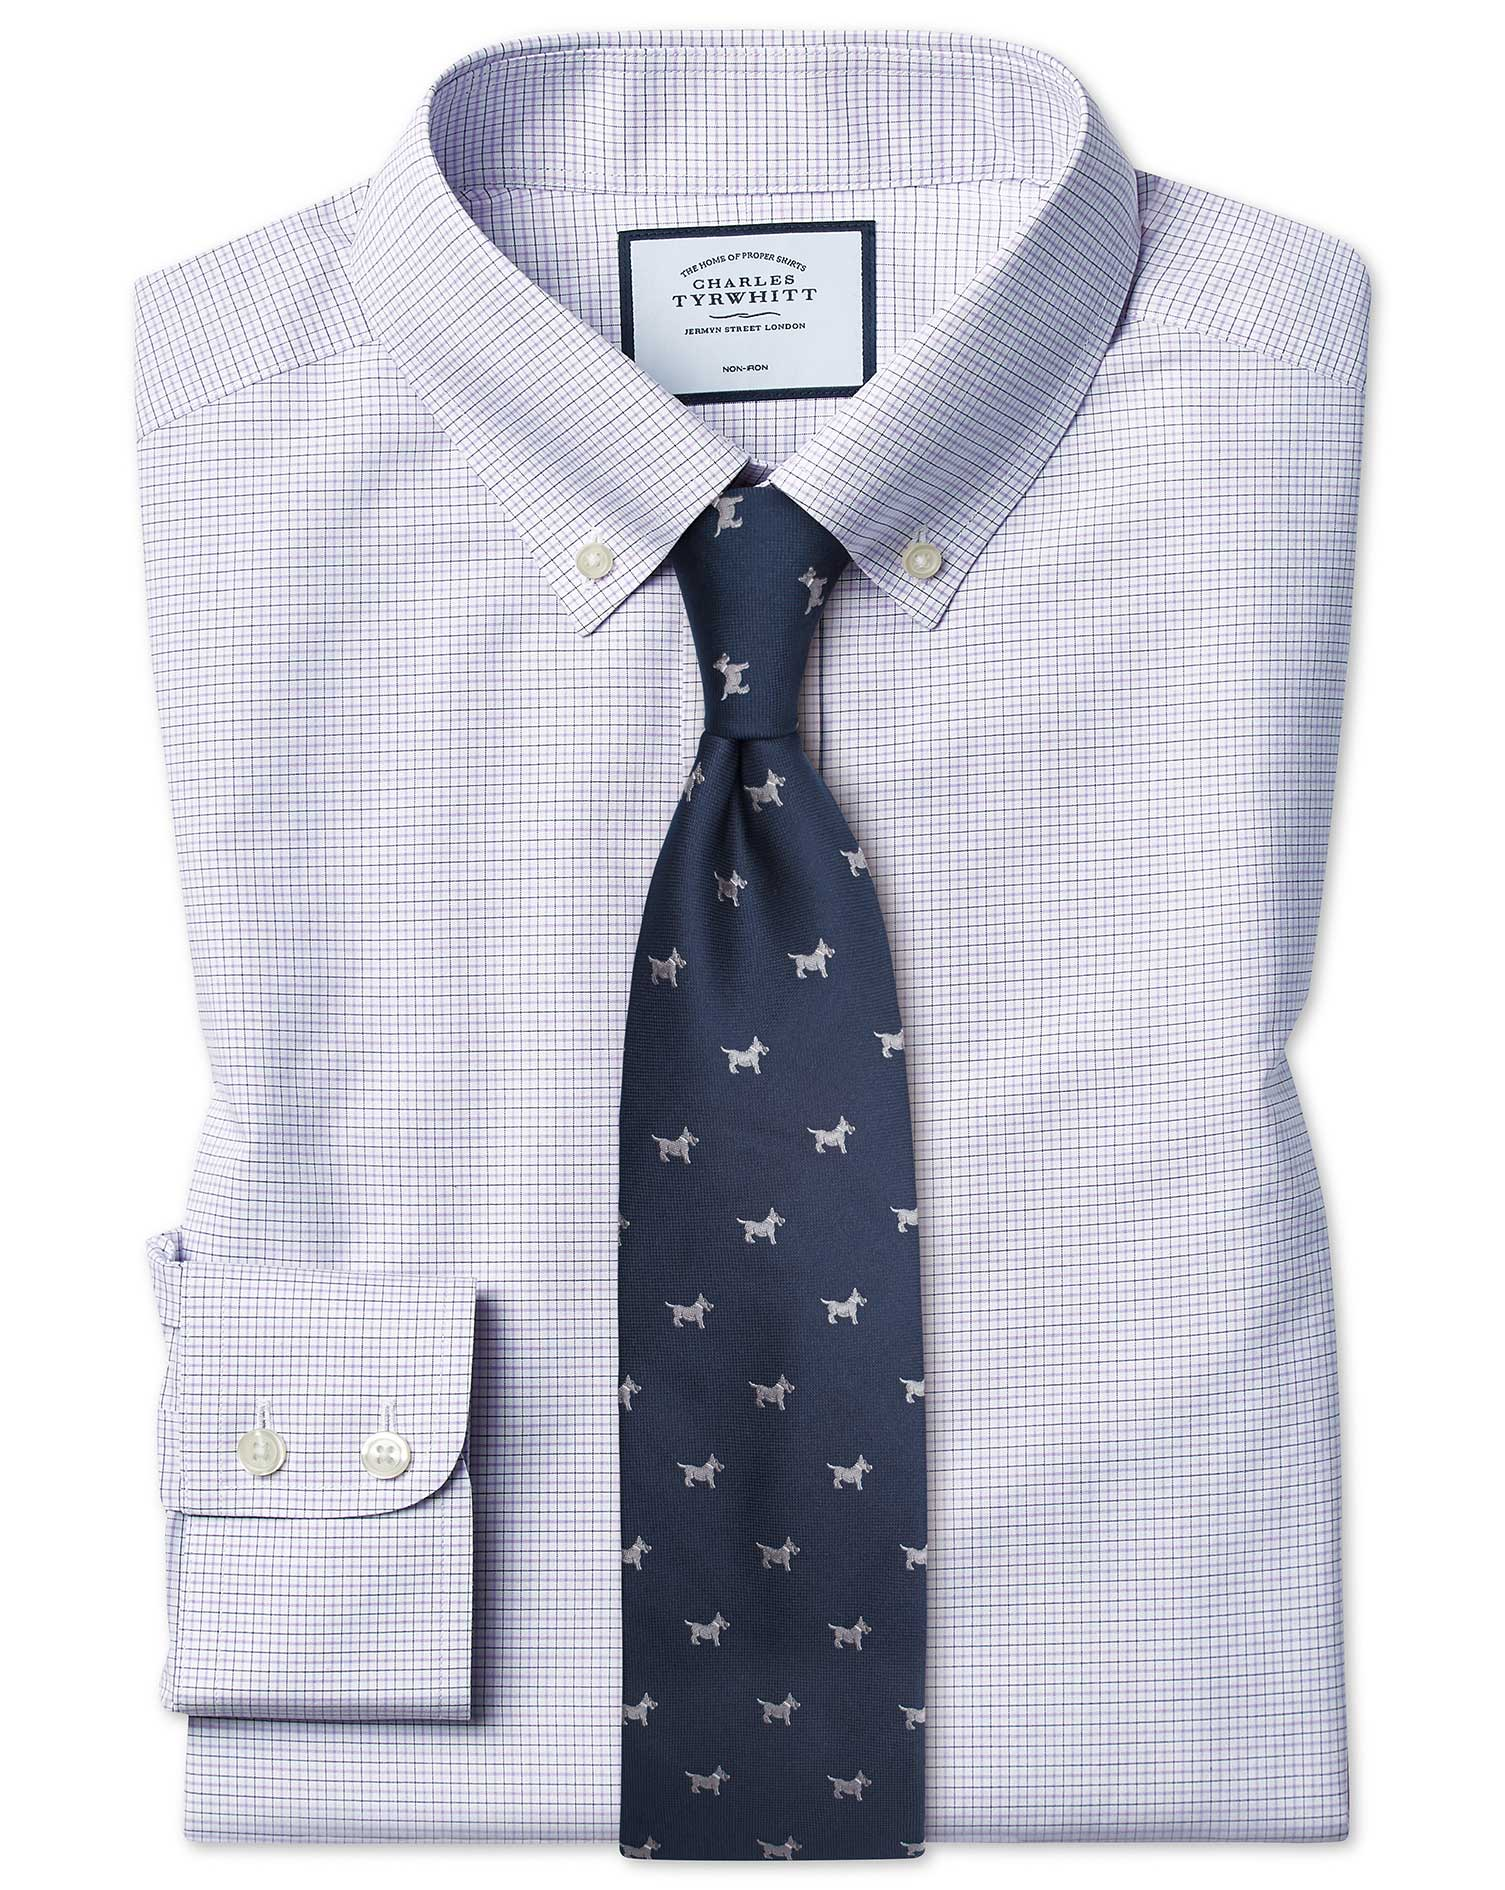 Cotton Slim Fit Non-Iron Button-Down Lilac And Blue Check Shirt